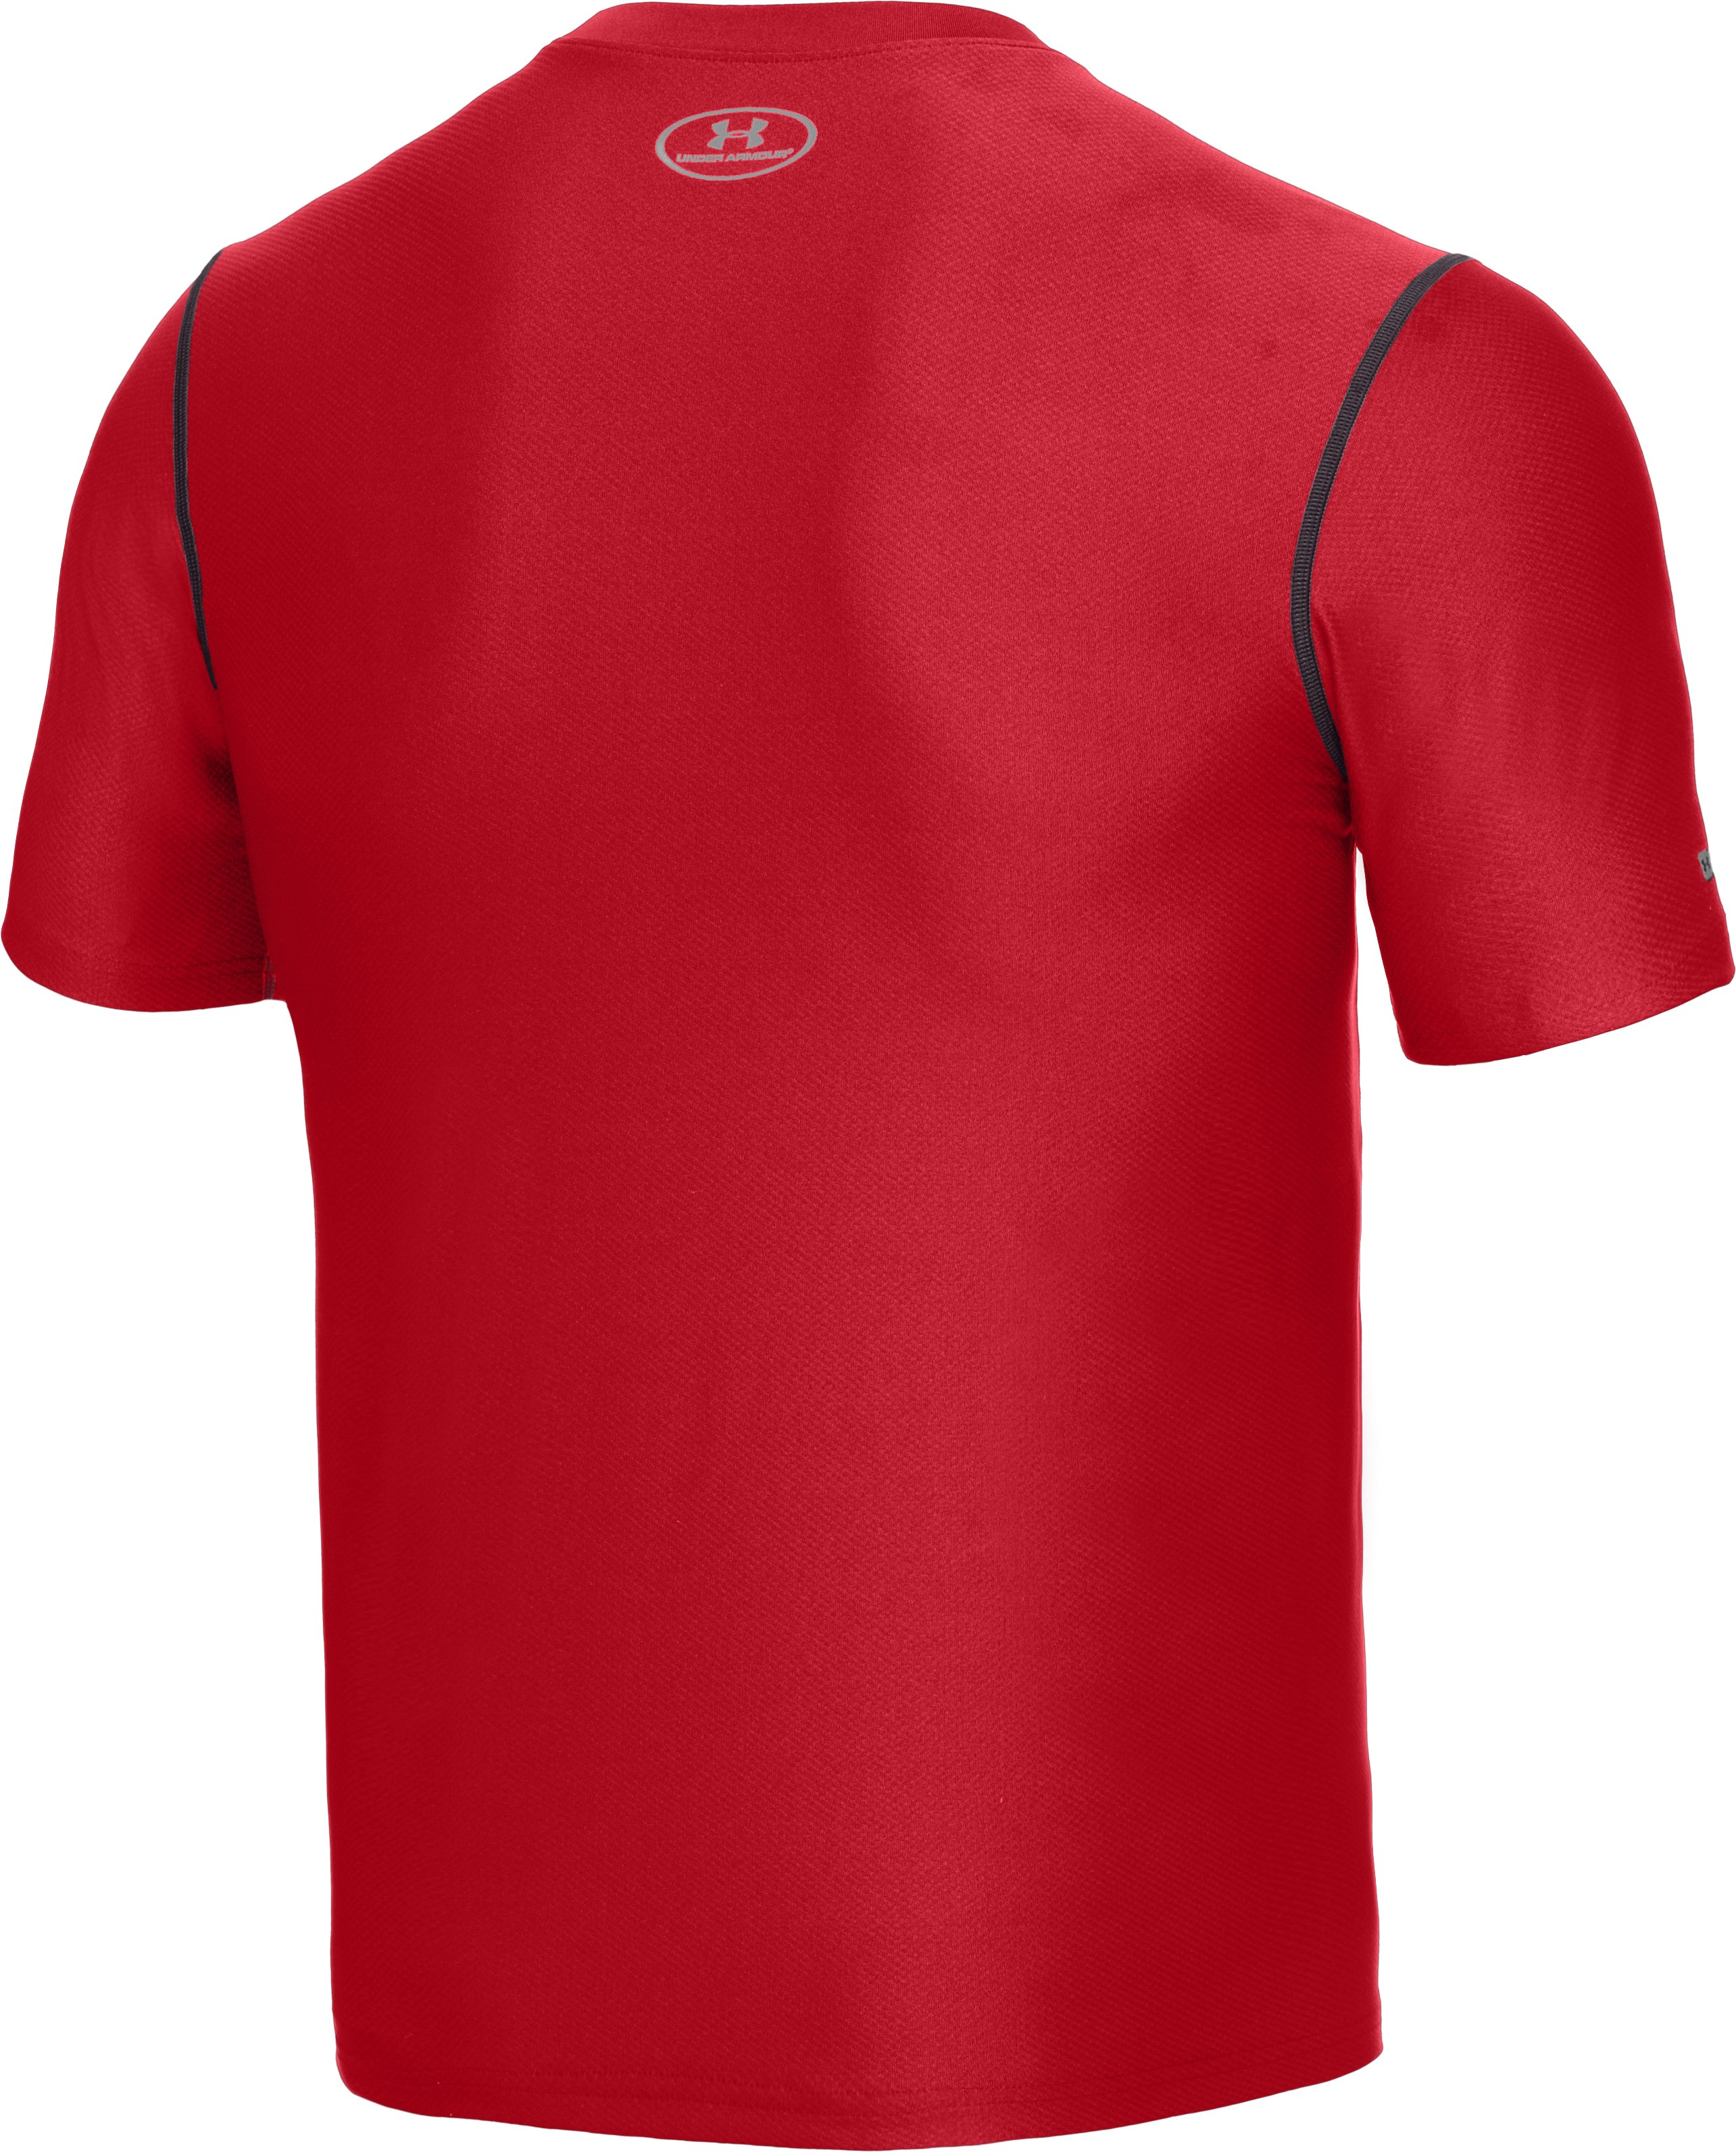 Men's HeatGear® Fitted Short Sleeve Crew, Red